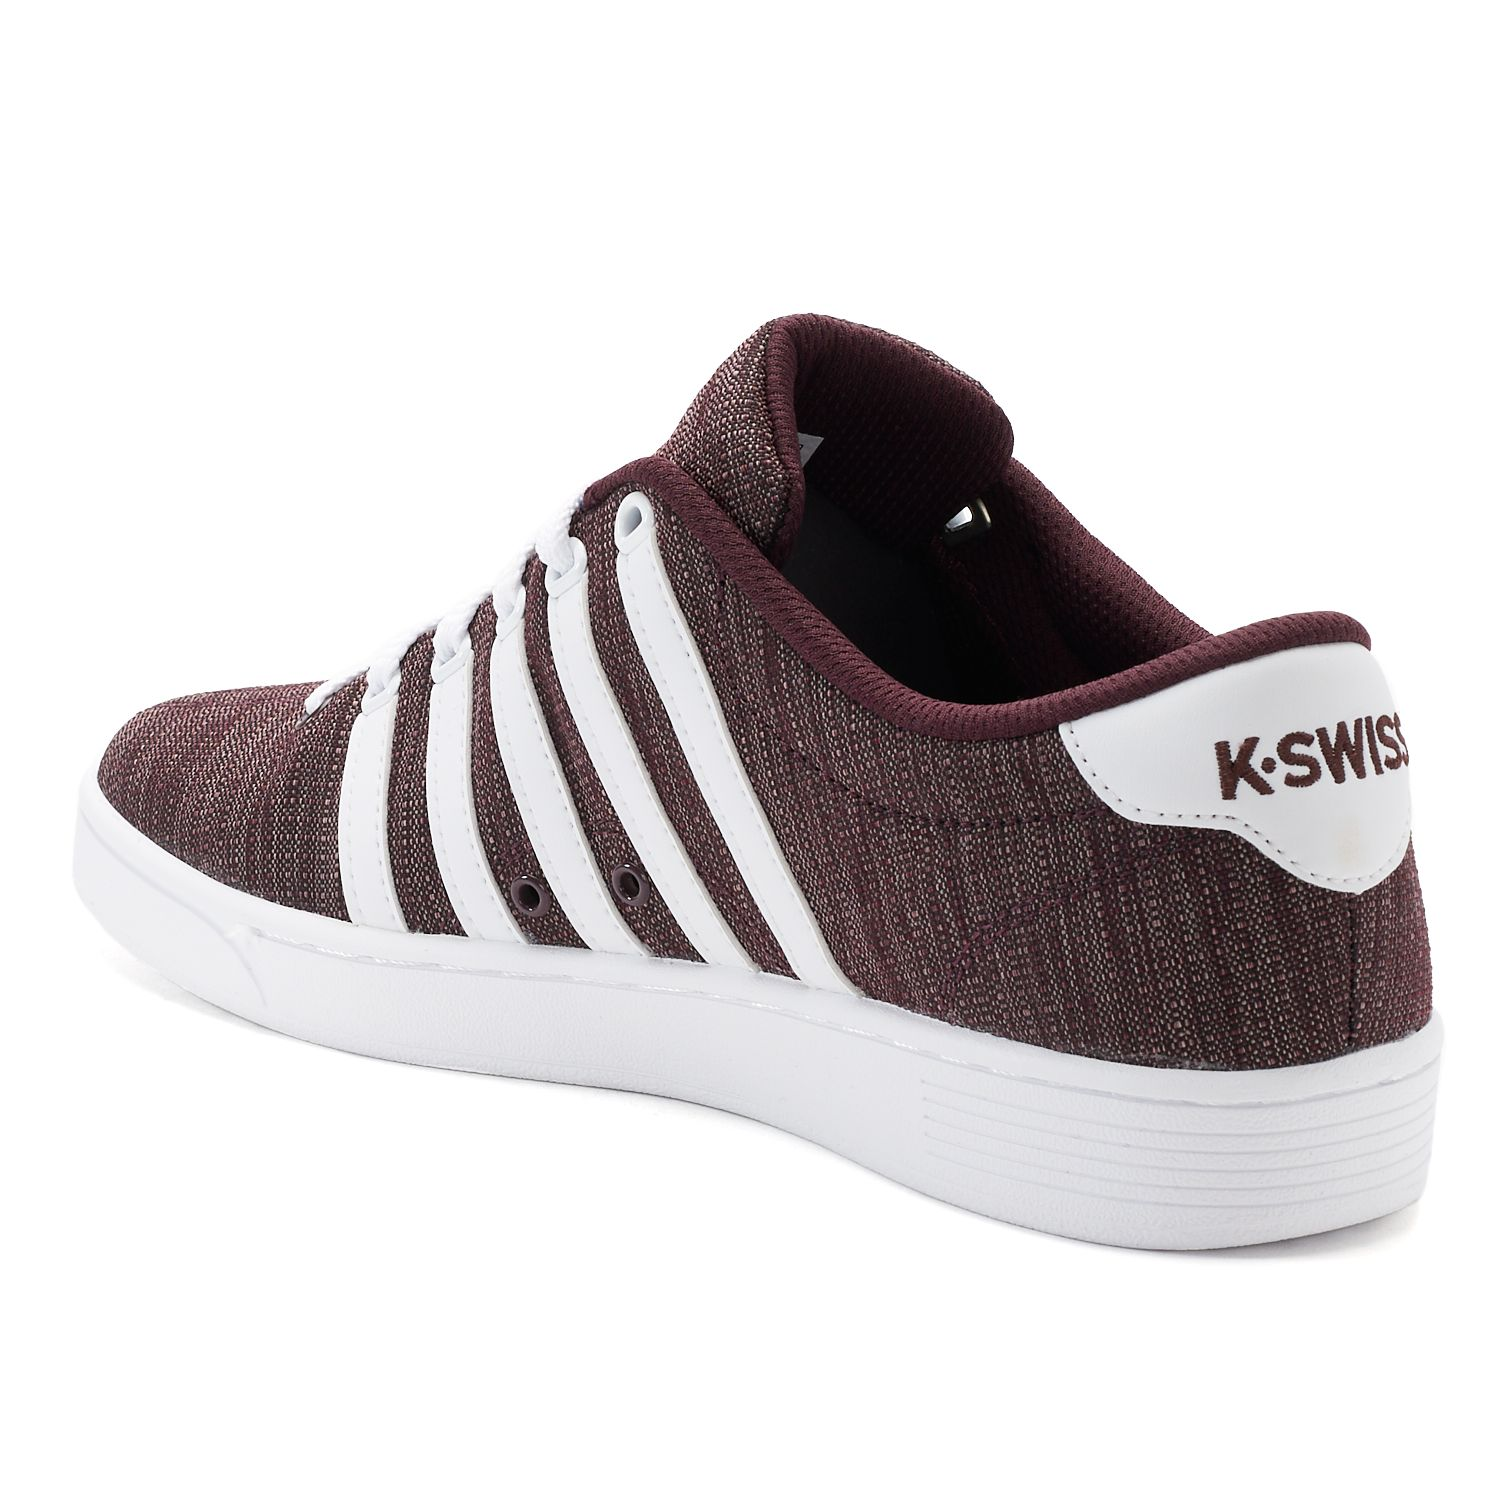 k swiss shoes in dallas tx which area was not covered wagons